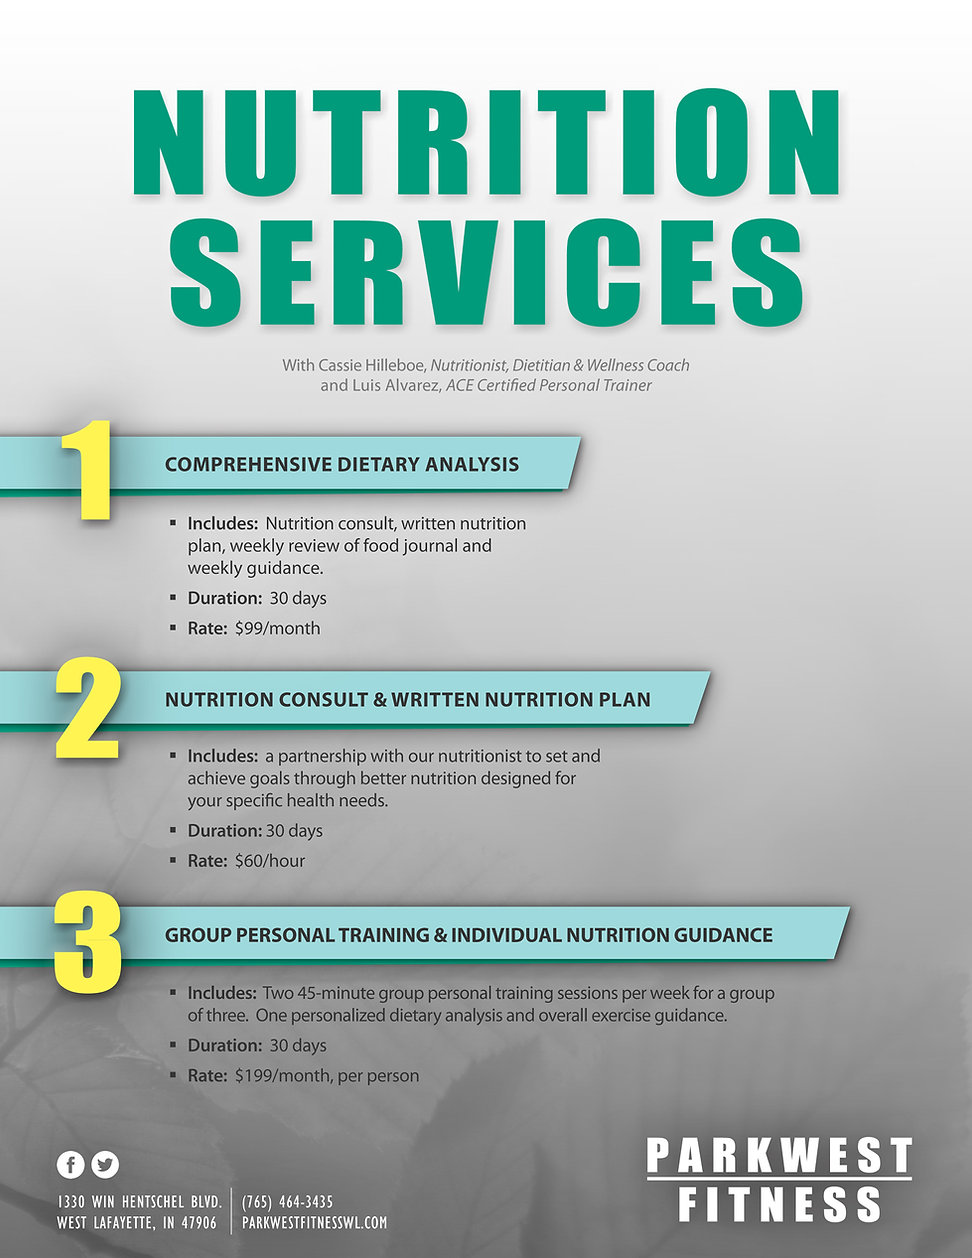 PWF-Nutrition-Services_v6_WEB.jpg